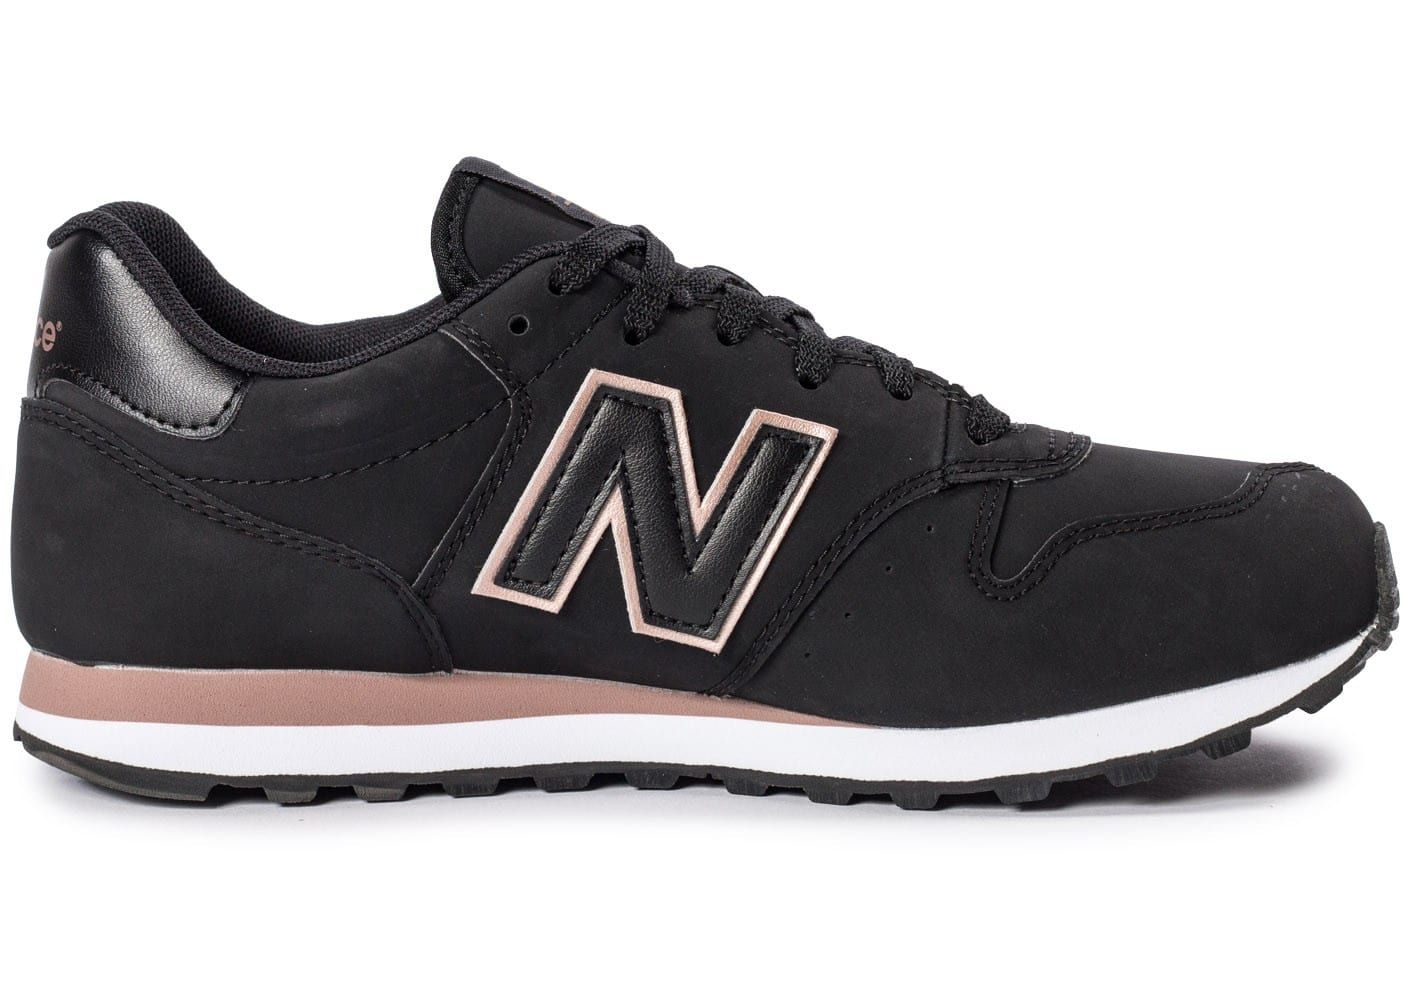 Chaussures New Balance 500 Pointure 40 noires femme